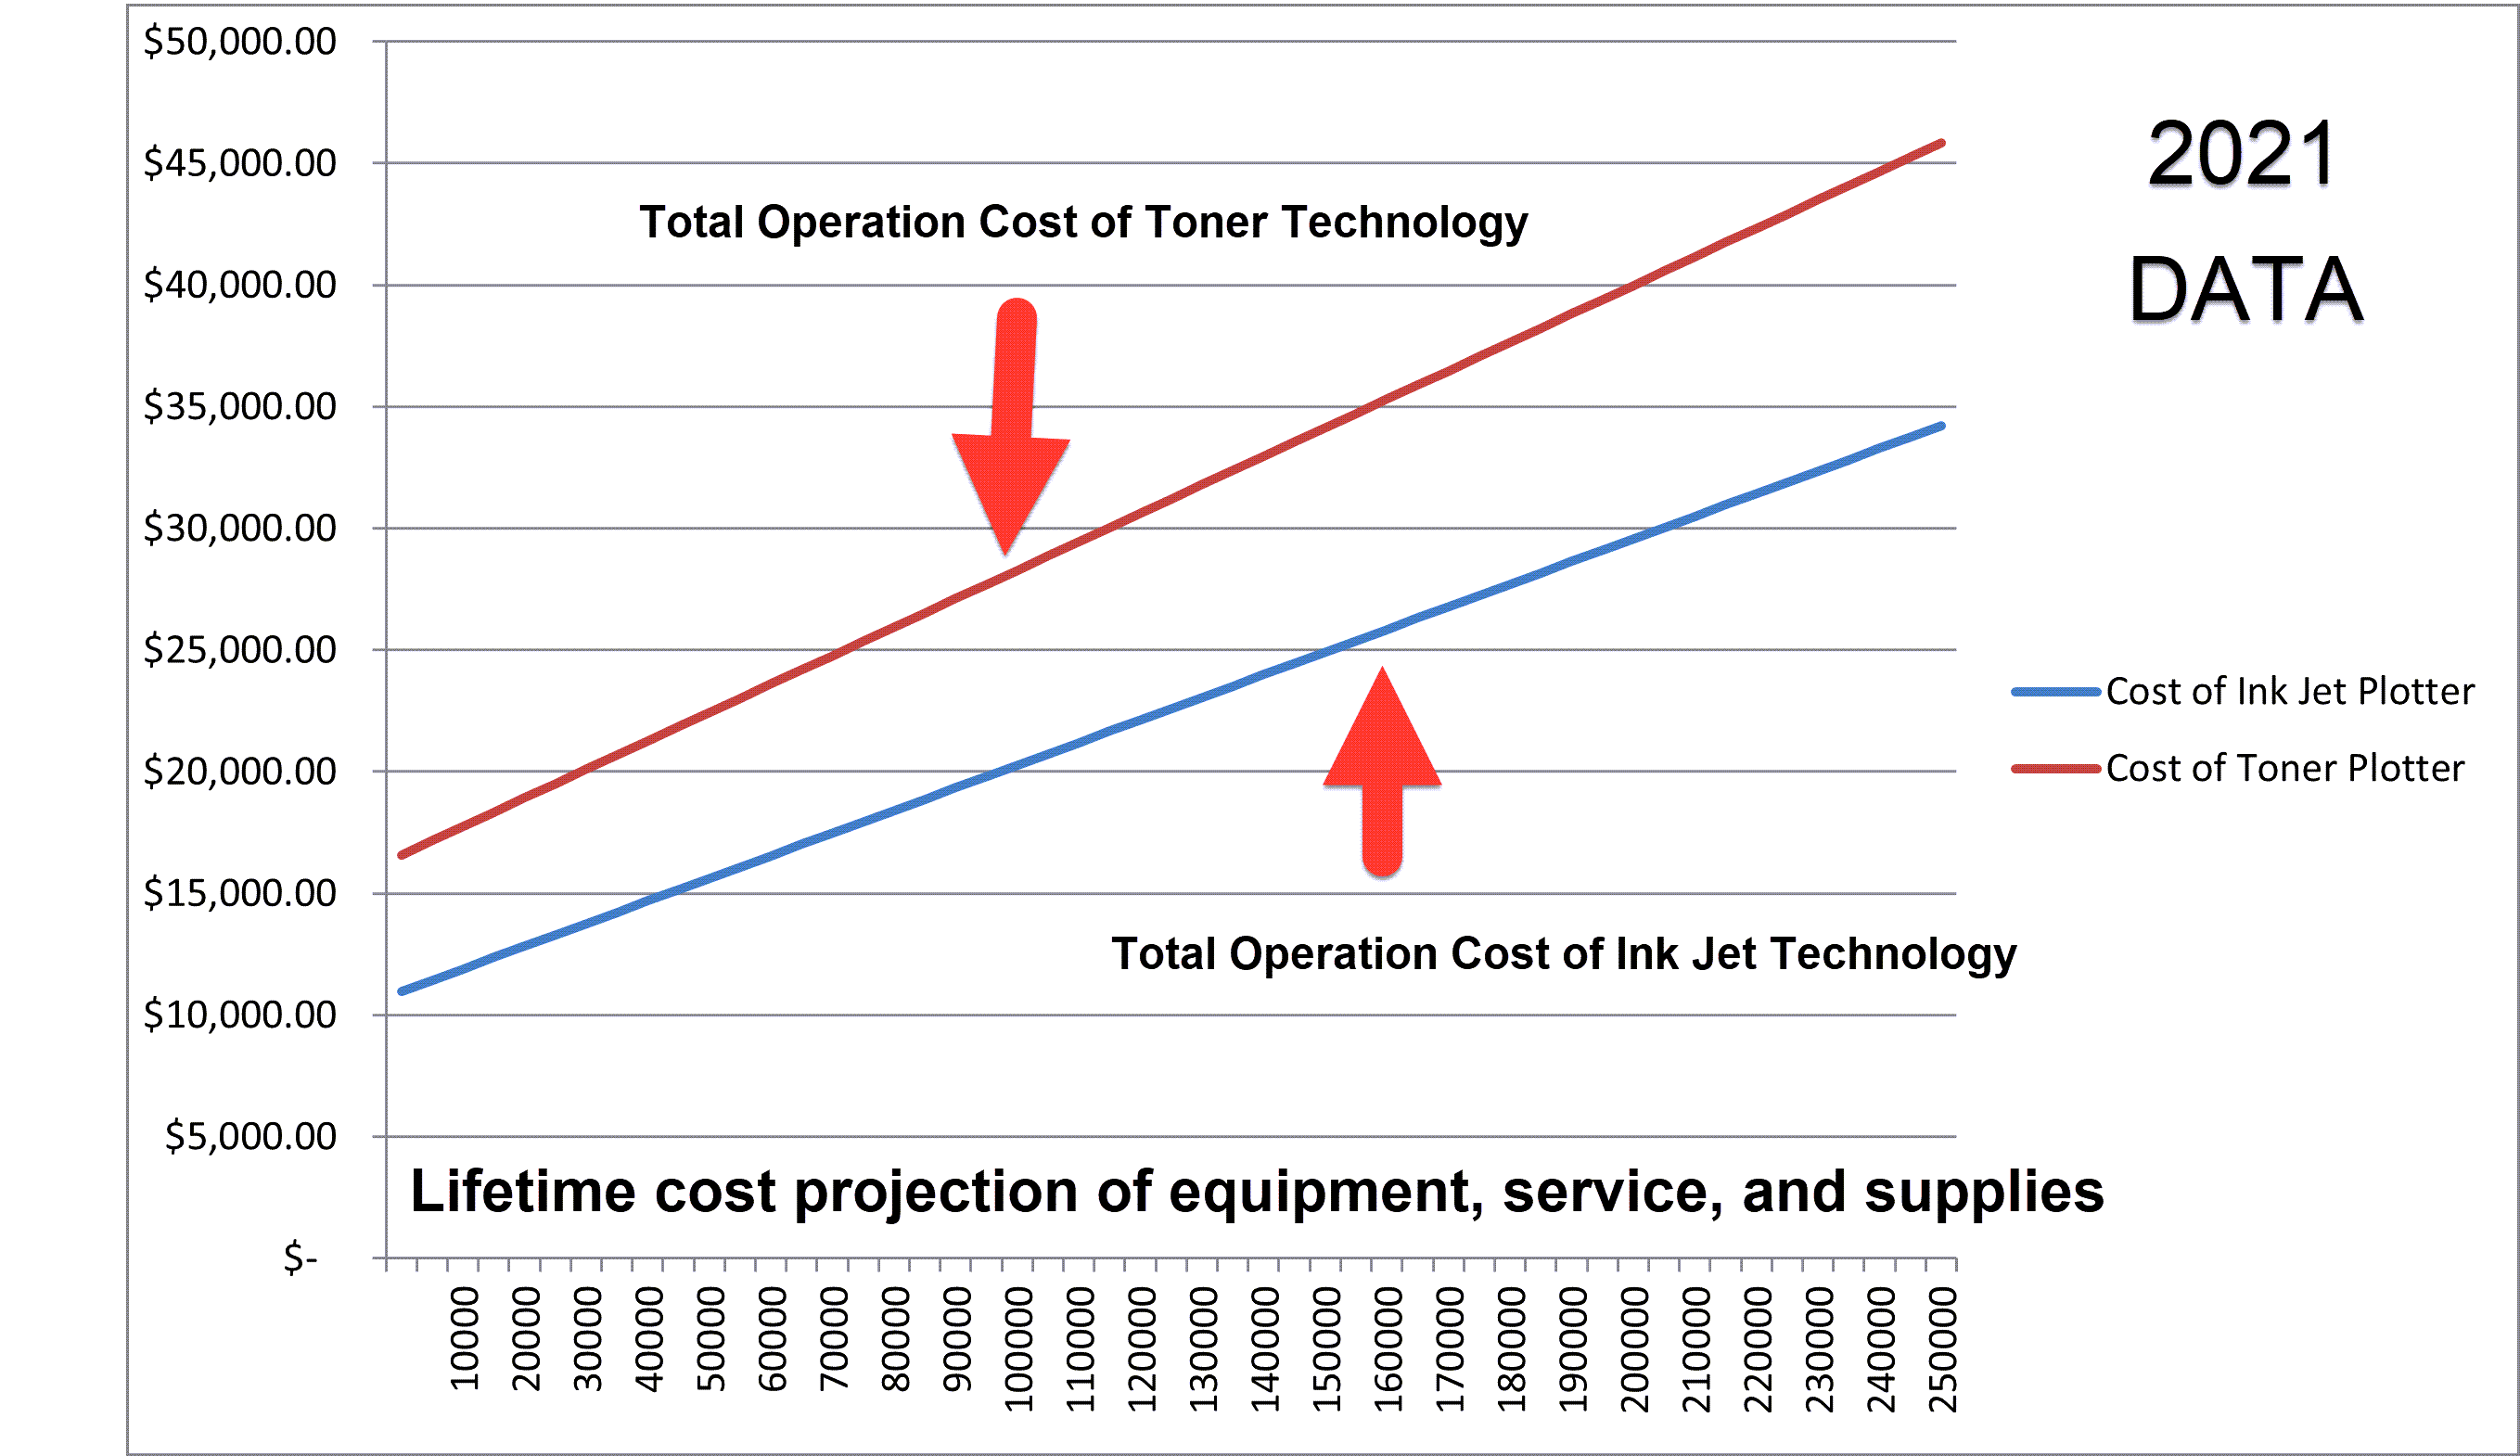 Operational Costs - NEW 2021